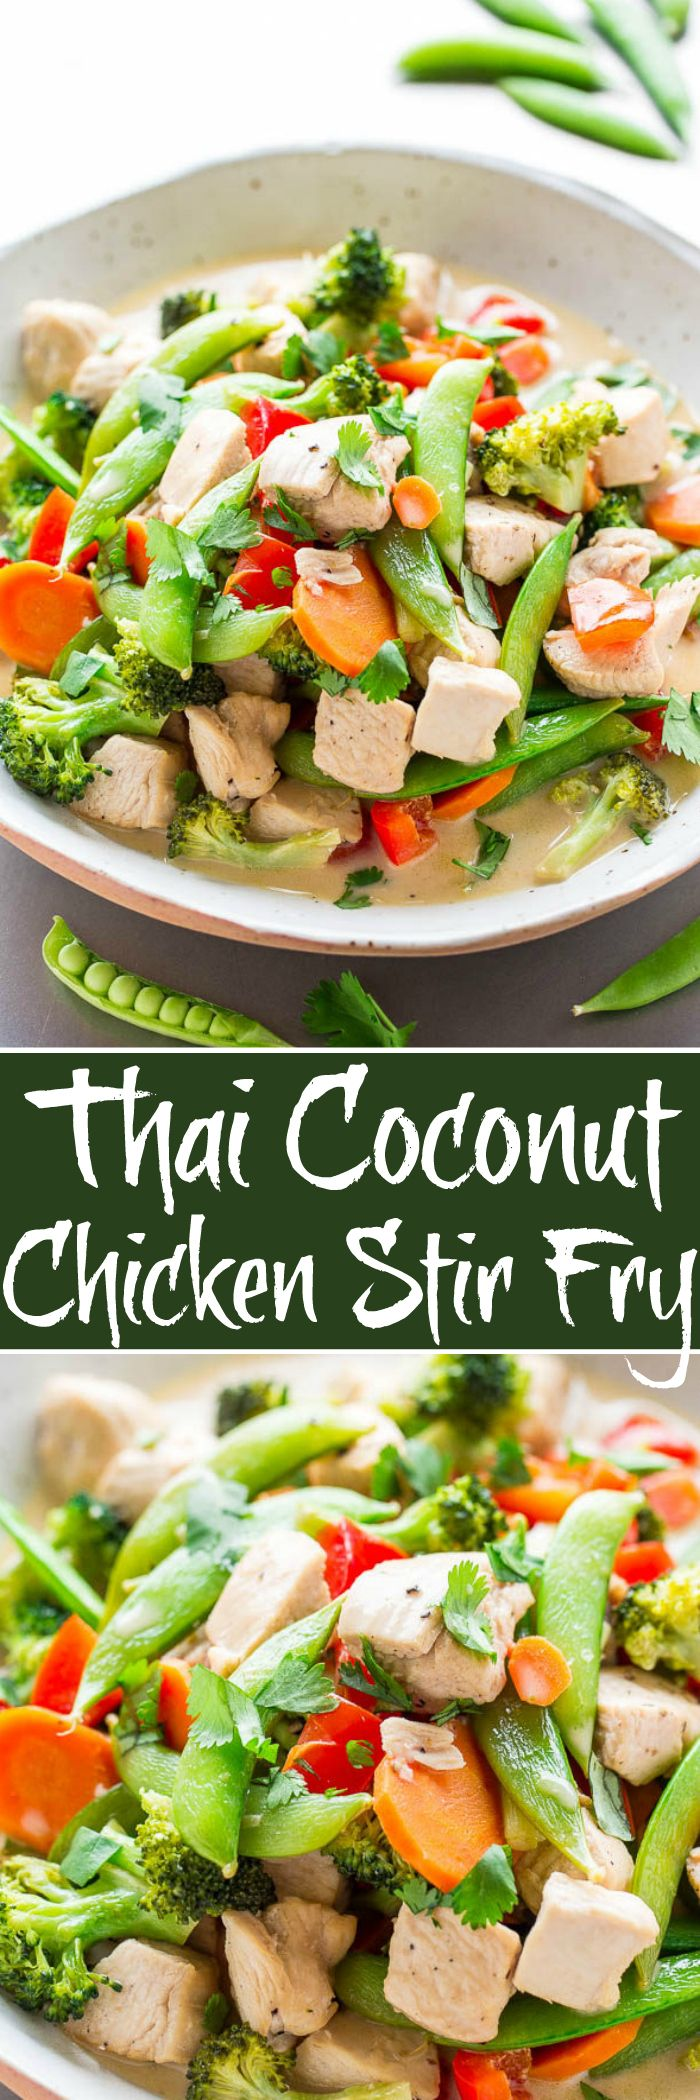 Thai Coconut Chicken Stir Fry - Chicken, sugar snap peas, bell peppers, and carrots simmered in a rich coconut milk broth that's irresistible!! Layers of flavor, EASY, ready in 20 MINUTES, and HEALTHY!!